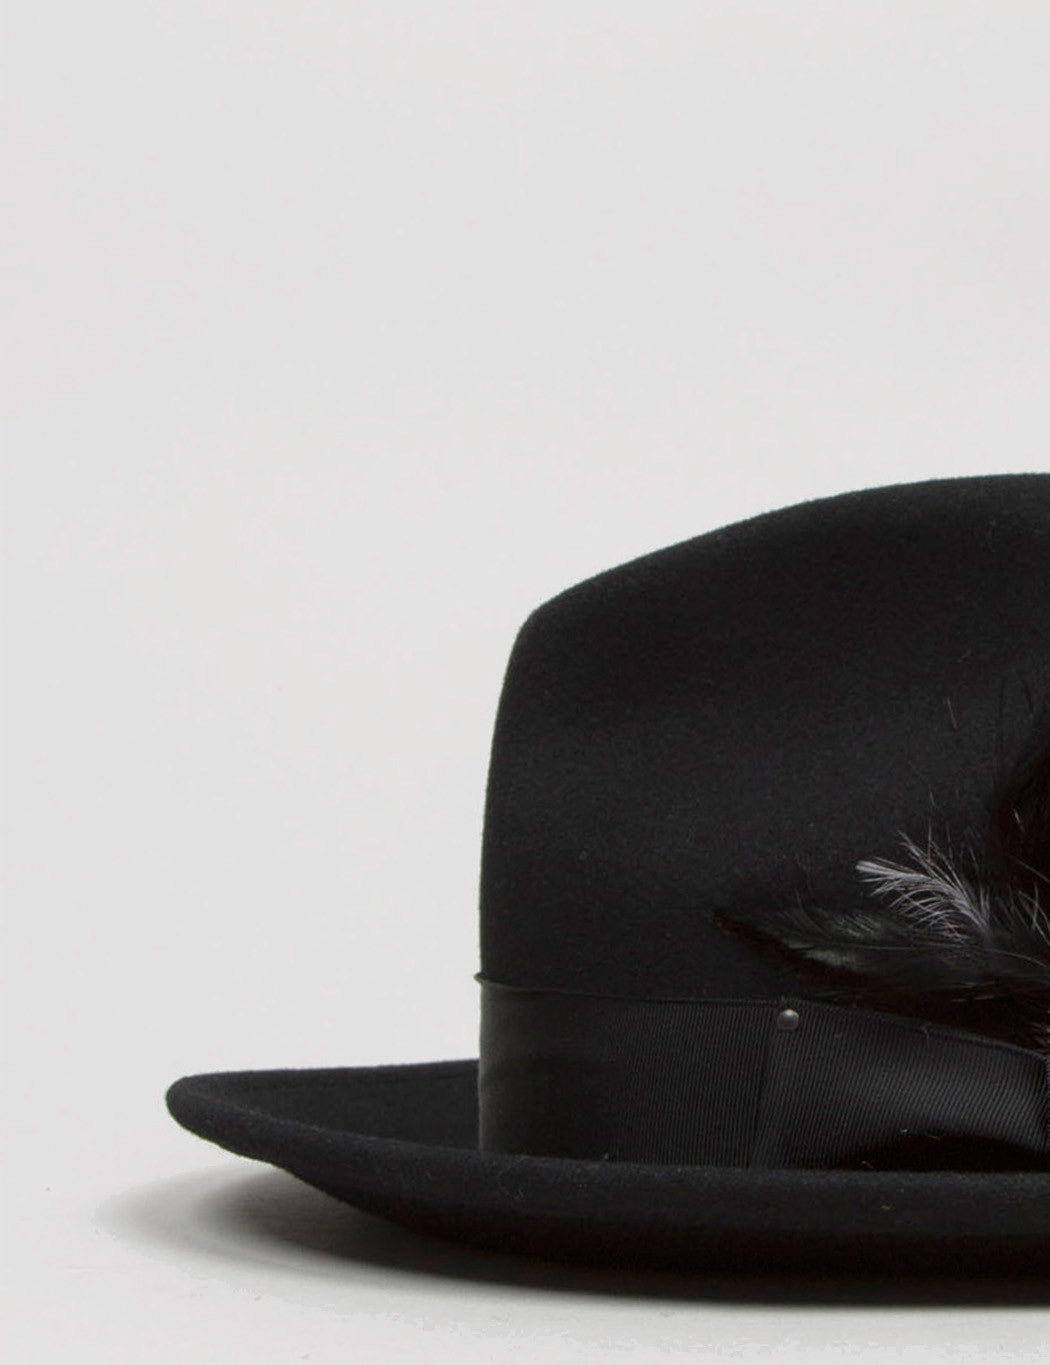 Bailey Blixen Widebrim Fedora Hat - Black